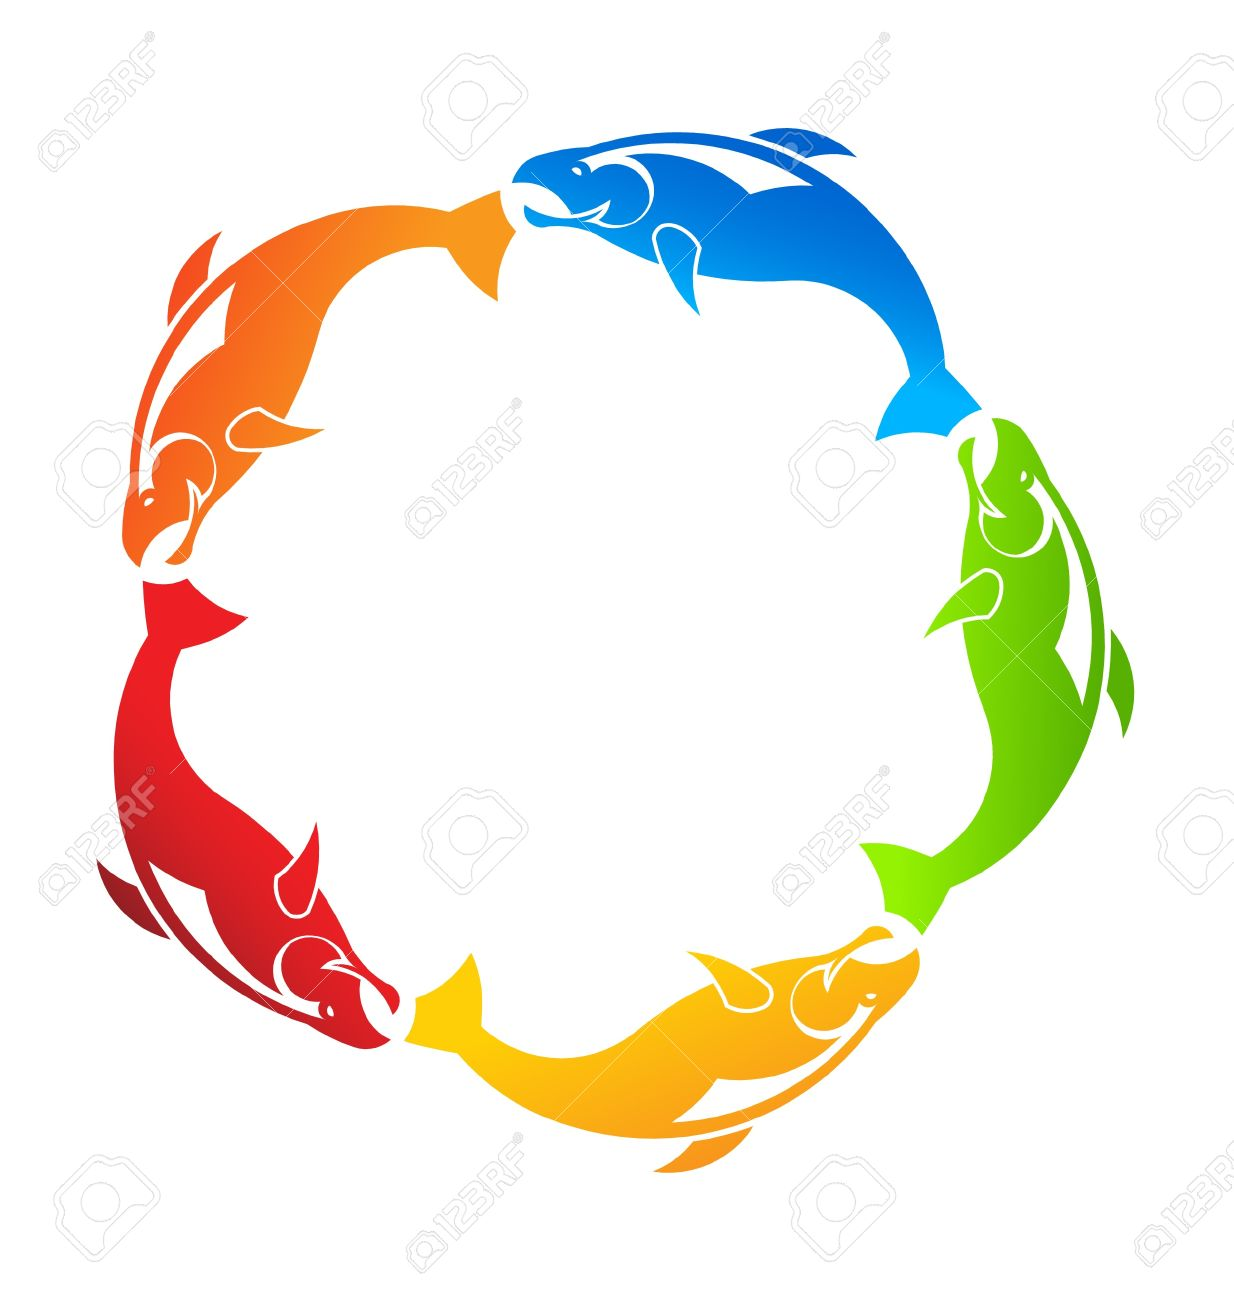 Fishes Circle Stock Vector - 17601638